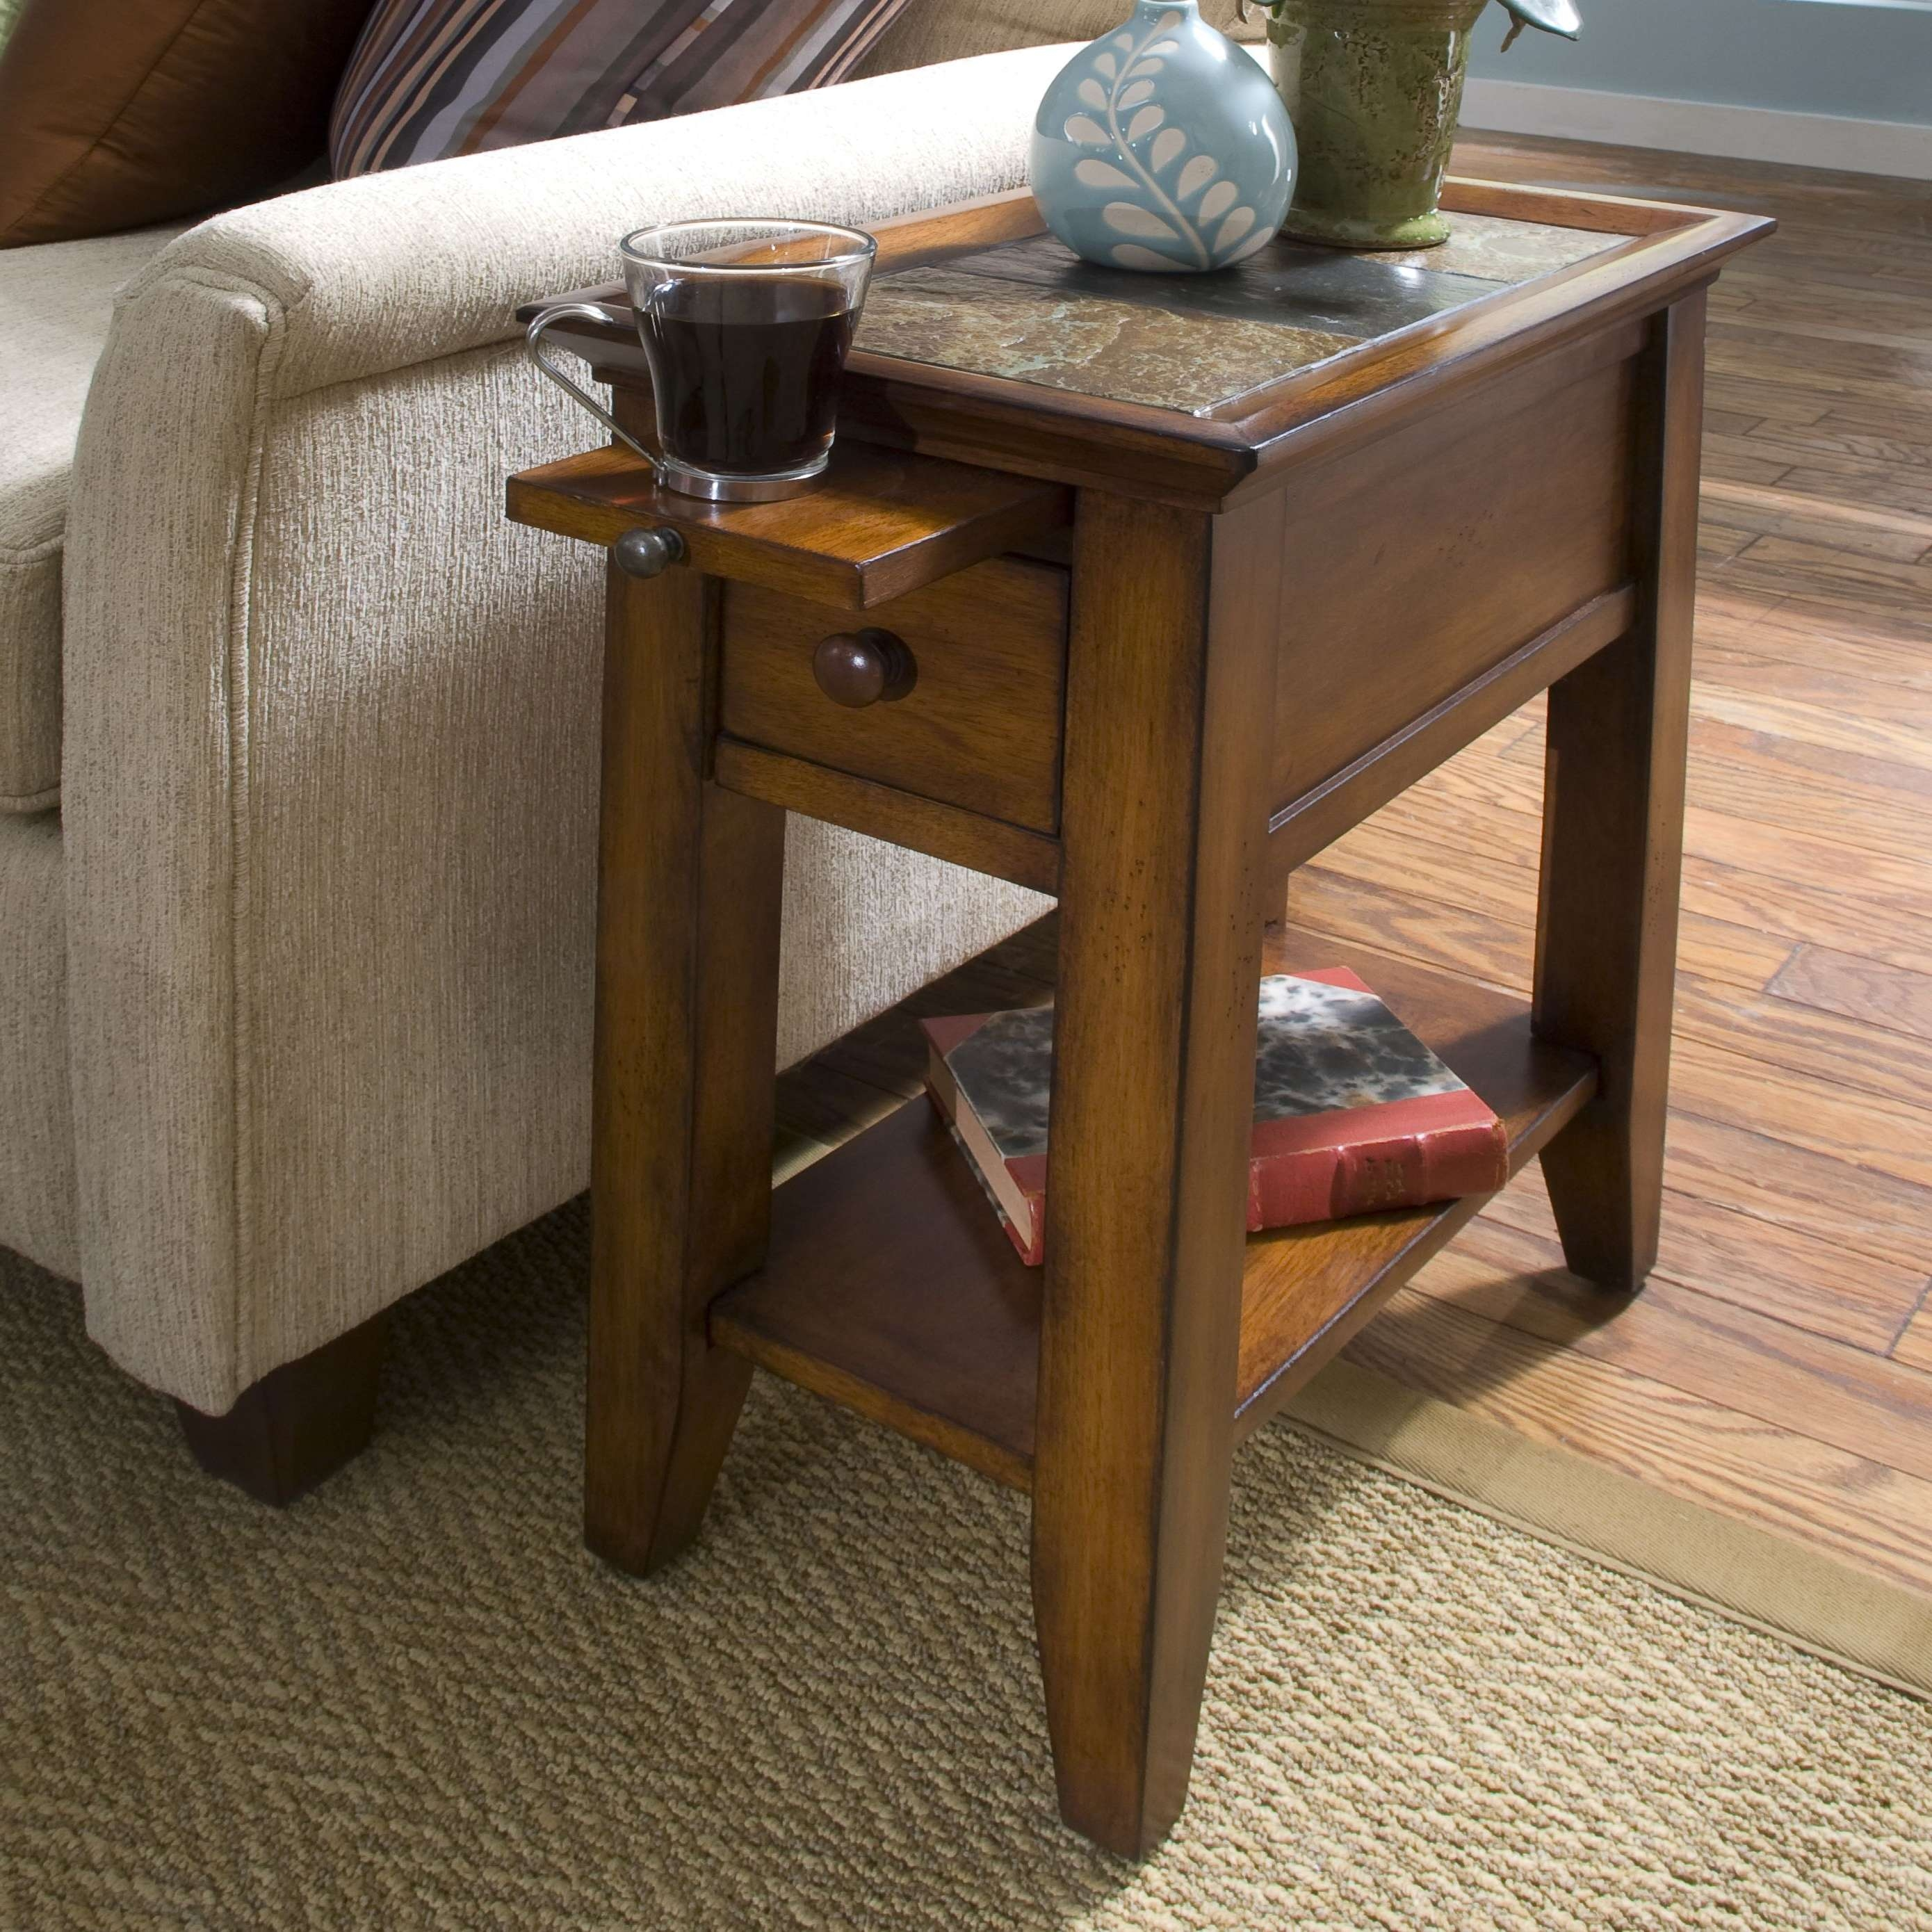 Newest Small Coffee Tables With Drawer With Regard To Coffee Table : Awesome Small Furniture Cool Coffee Tables (View 18 of 20)